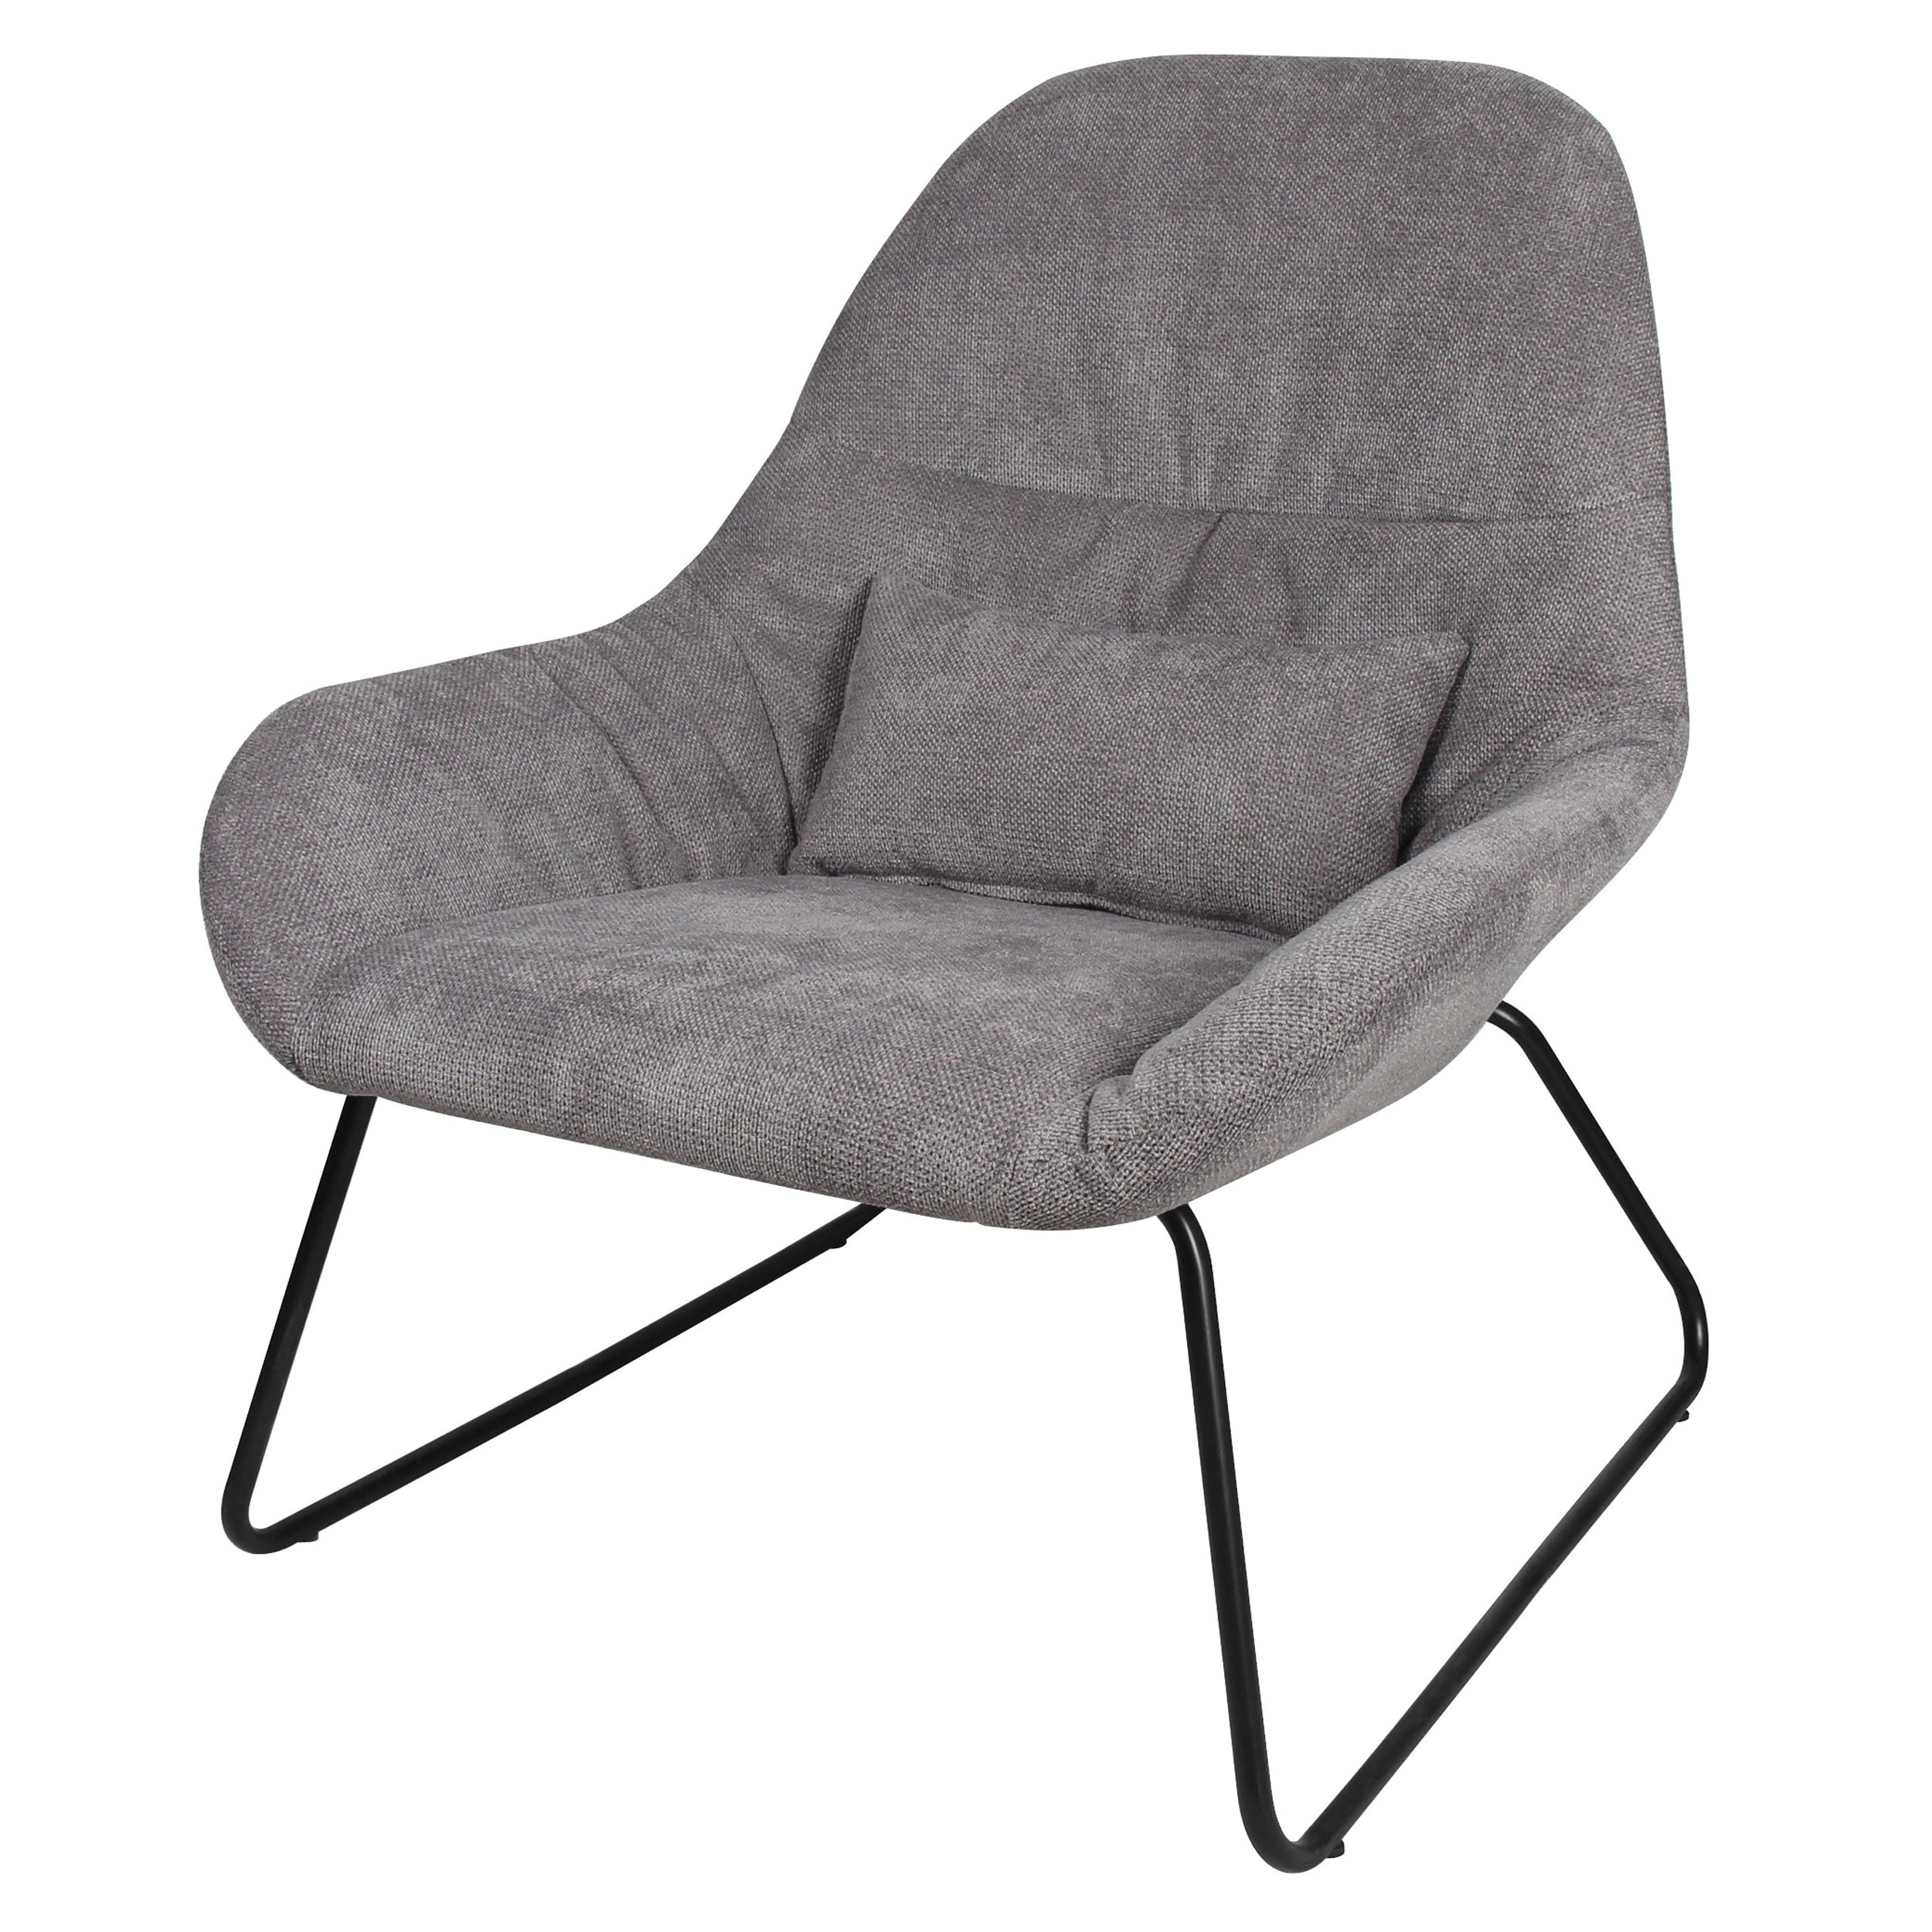 fauteuil heden gris adoptez nos fauteuils heden gris design rdv d co. Black Bedroom Furniture Sets. Home Design Ideas